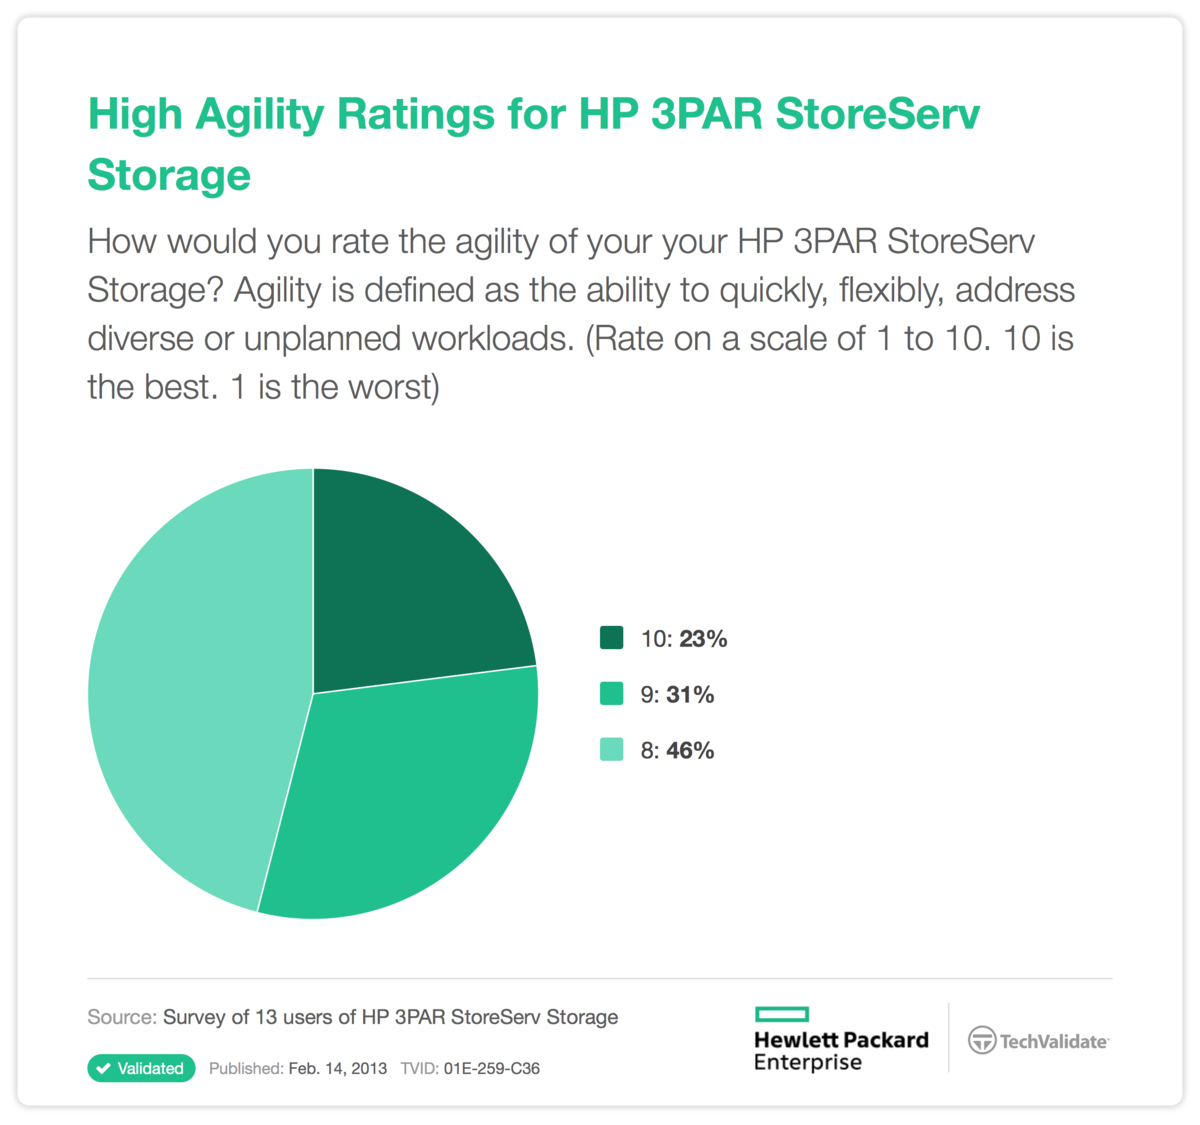 High Agility Ratings for HP 3PAR StoreServ Storage